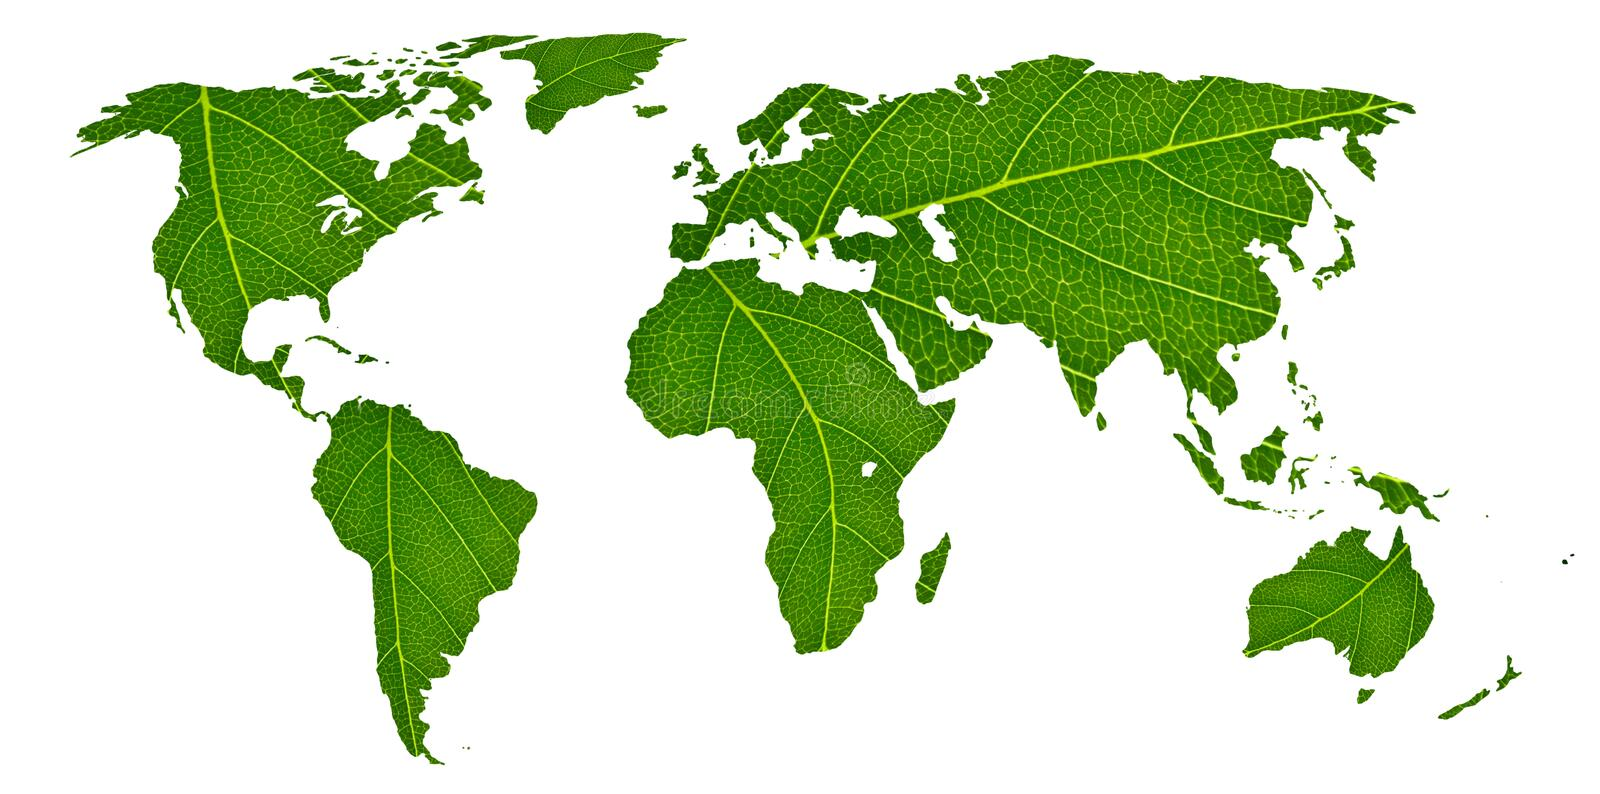 Eco world map made of green leaves, concept ecology royalty free stock images